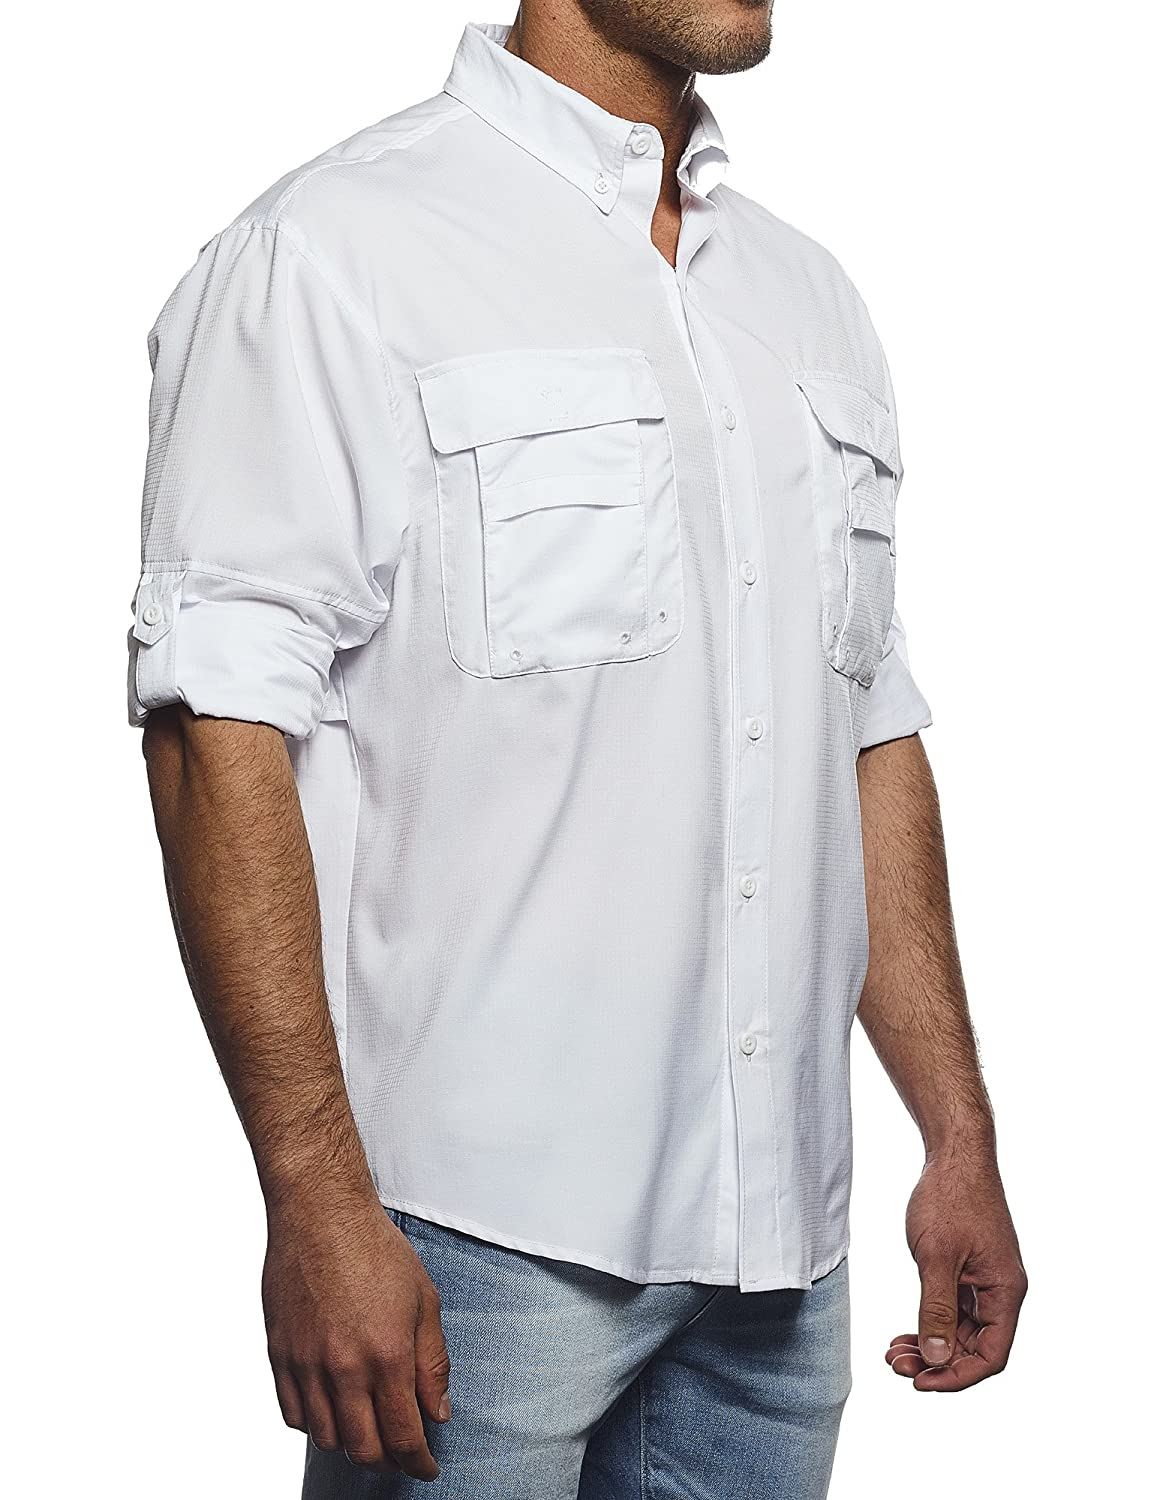 Pro Celebrity Mens Long Sleeve Button-Down Fishing Shirt